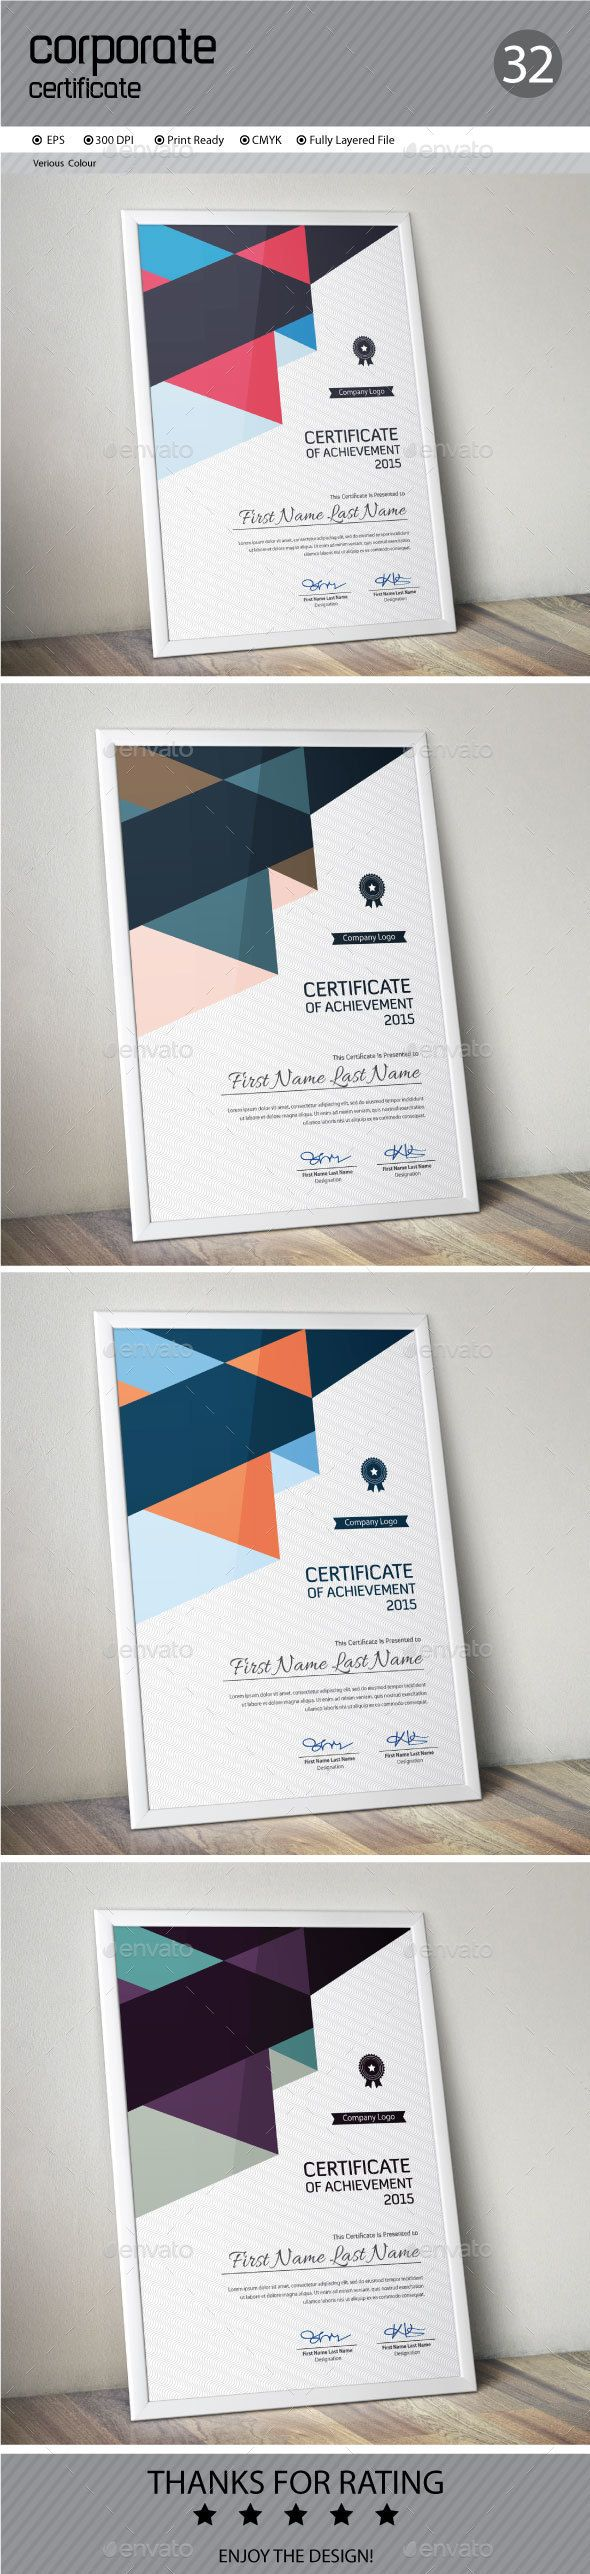 Certificate Template Vector EPS. Download here: http://graphicriver.net/item/certificate/13556796?ref=ksioks